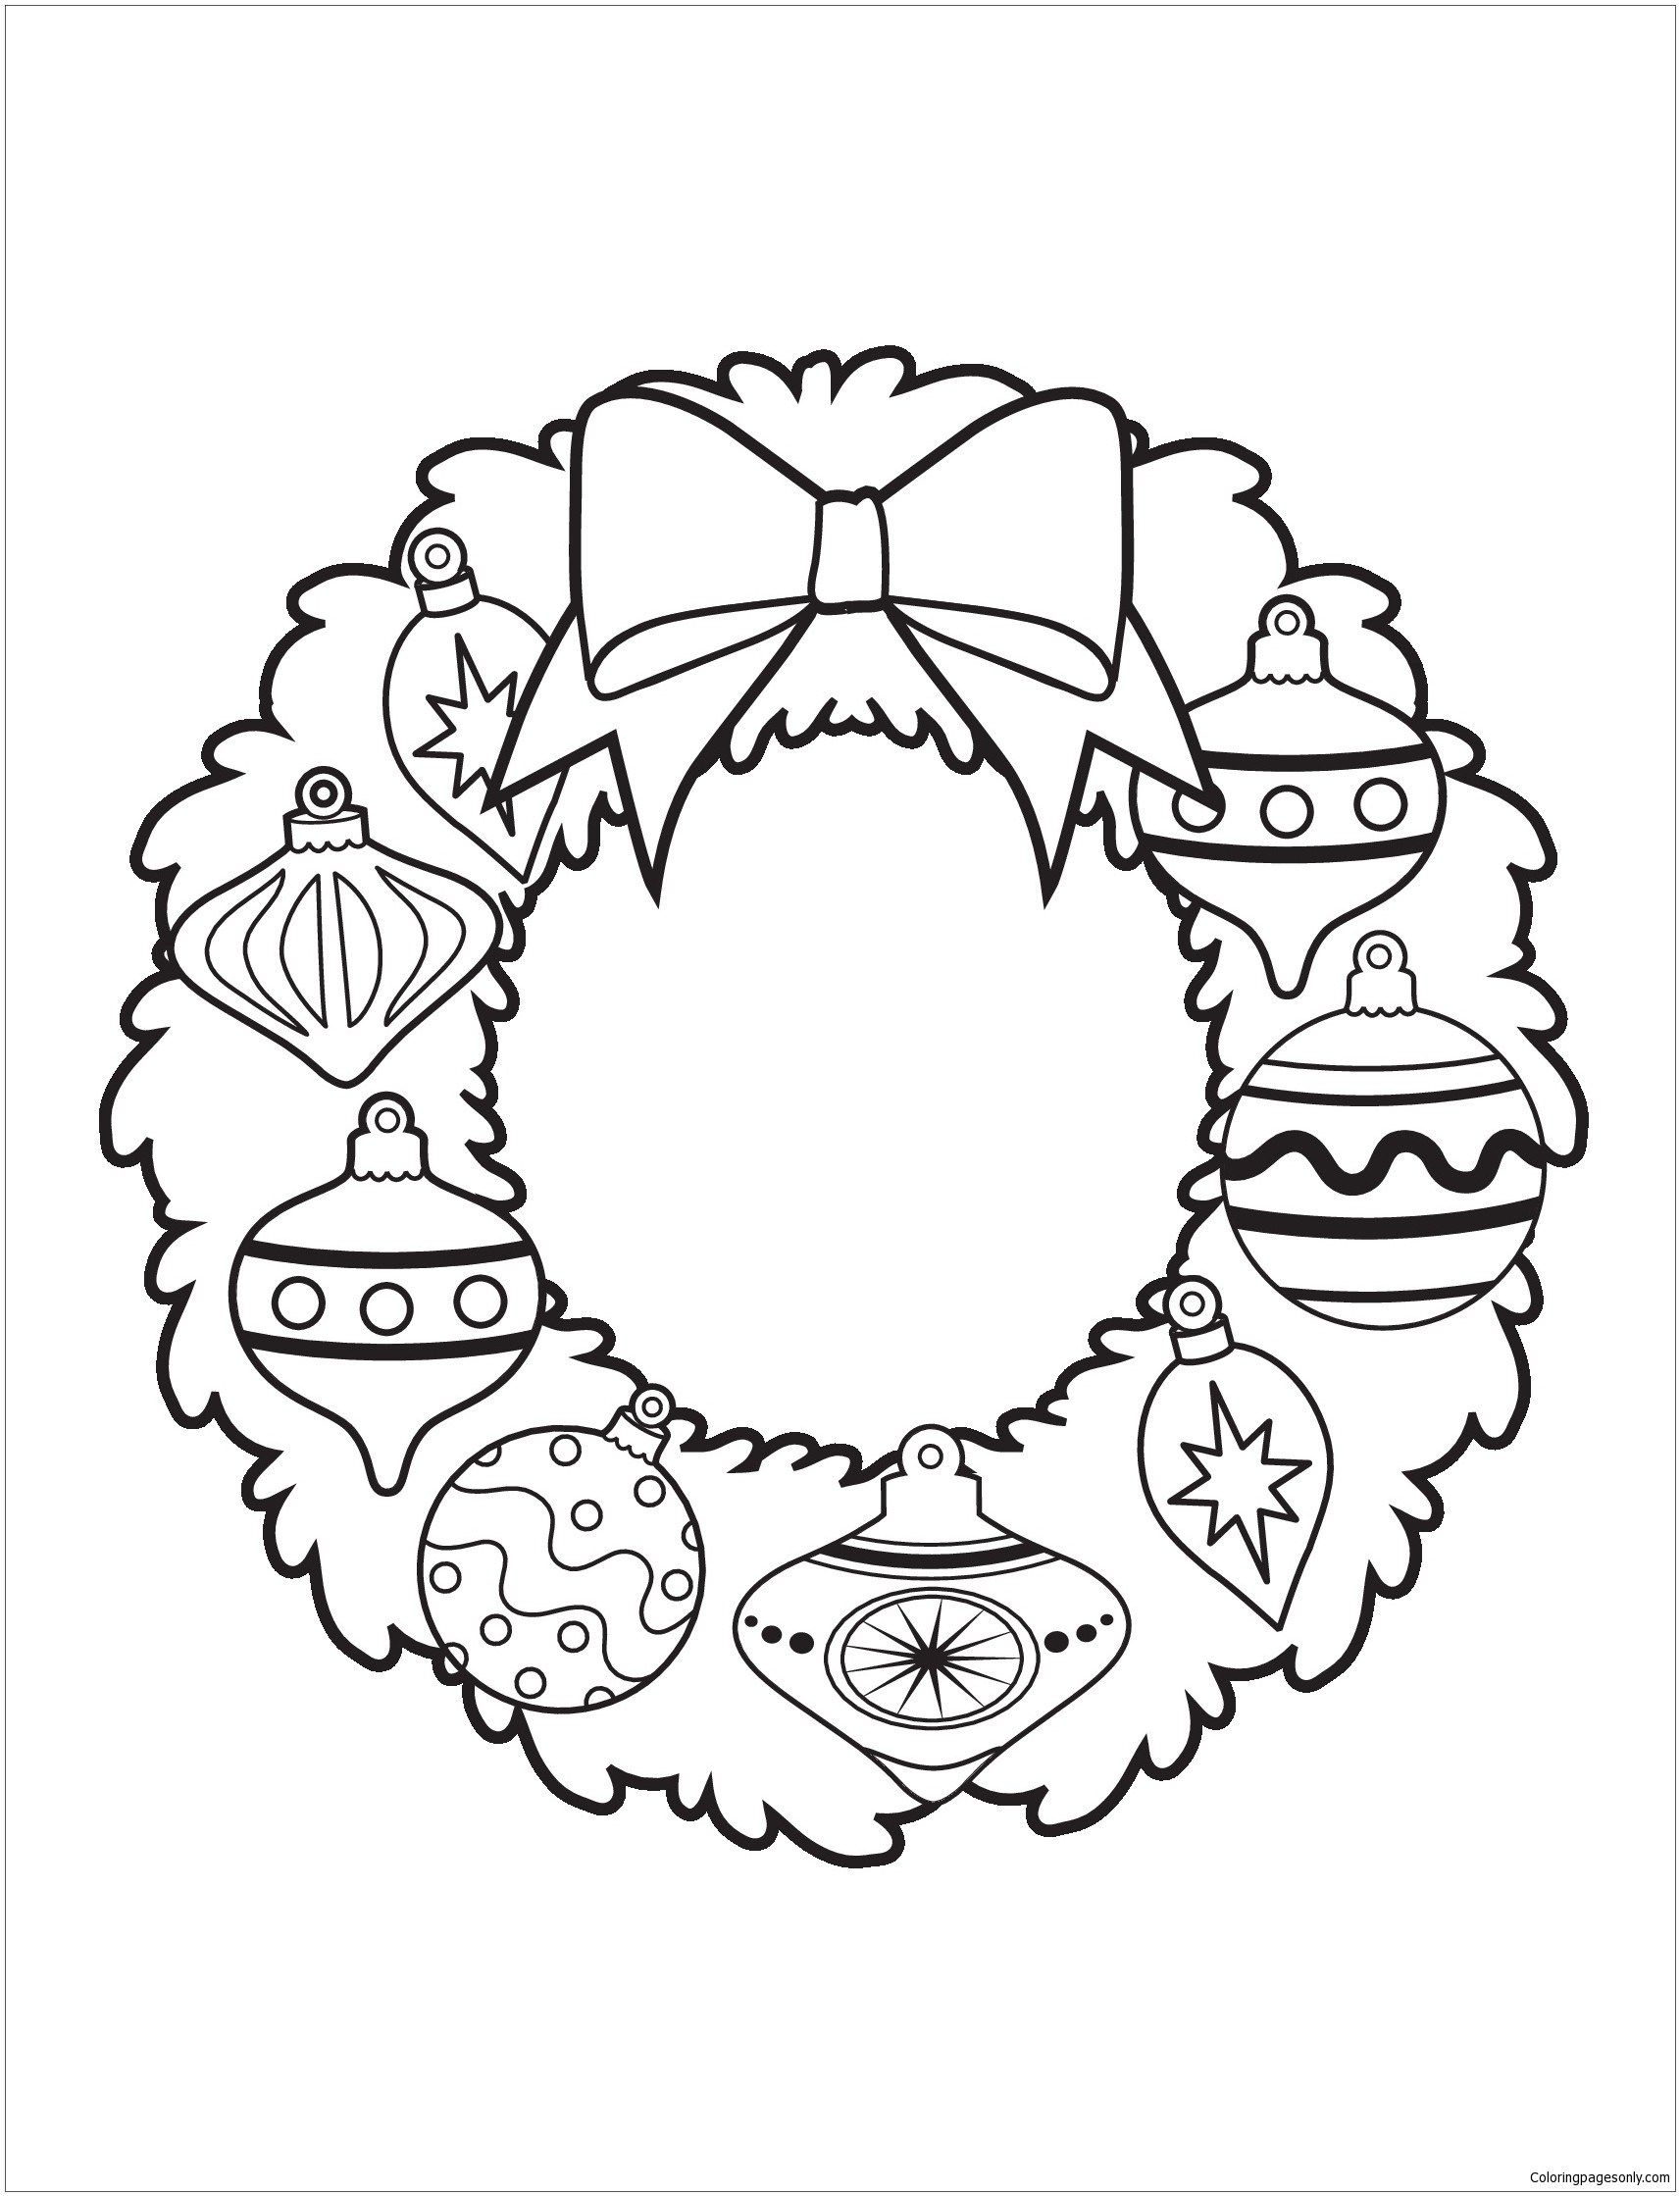 Pin On Collection Of Coloring Worksheets